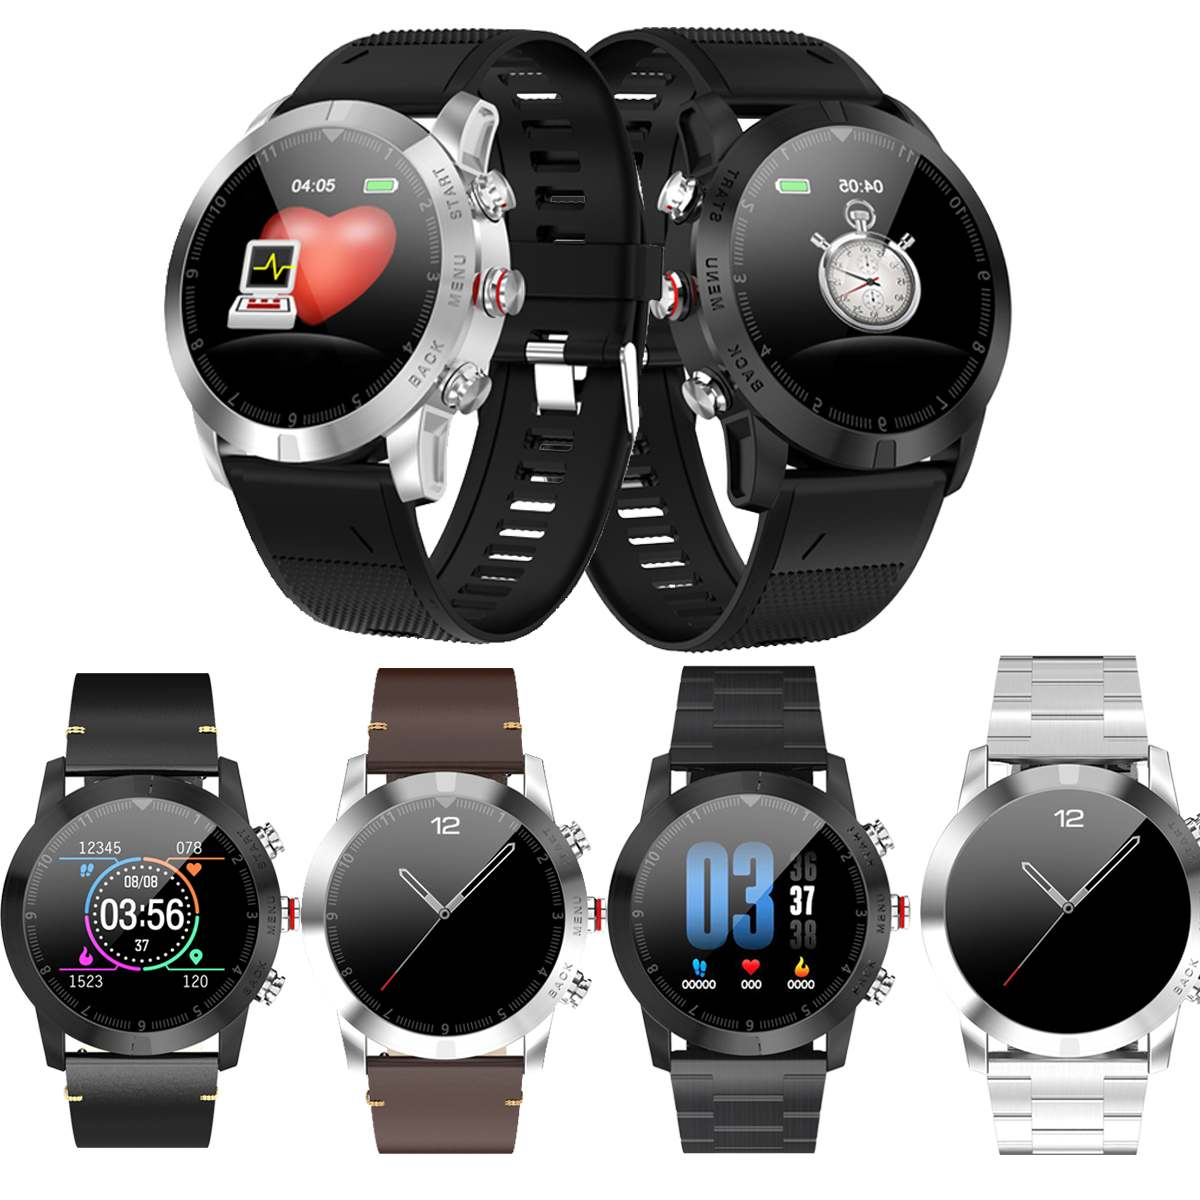 <font><b>DT</b></font> NO.1 <font><b>S10</b></font> Full TouchScreen <font><b>Smart</b></font> <font><b>Watch</b></font> Detachable Design Wristband Large Battery Caller ID Display Sport <font><b>Smart</b></font> <font><b>Watch</b></font> Bracelet image